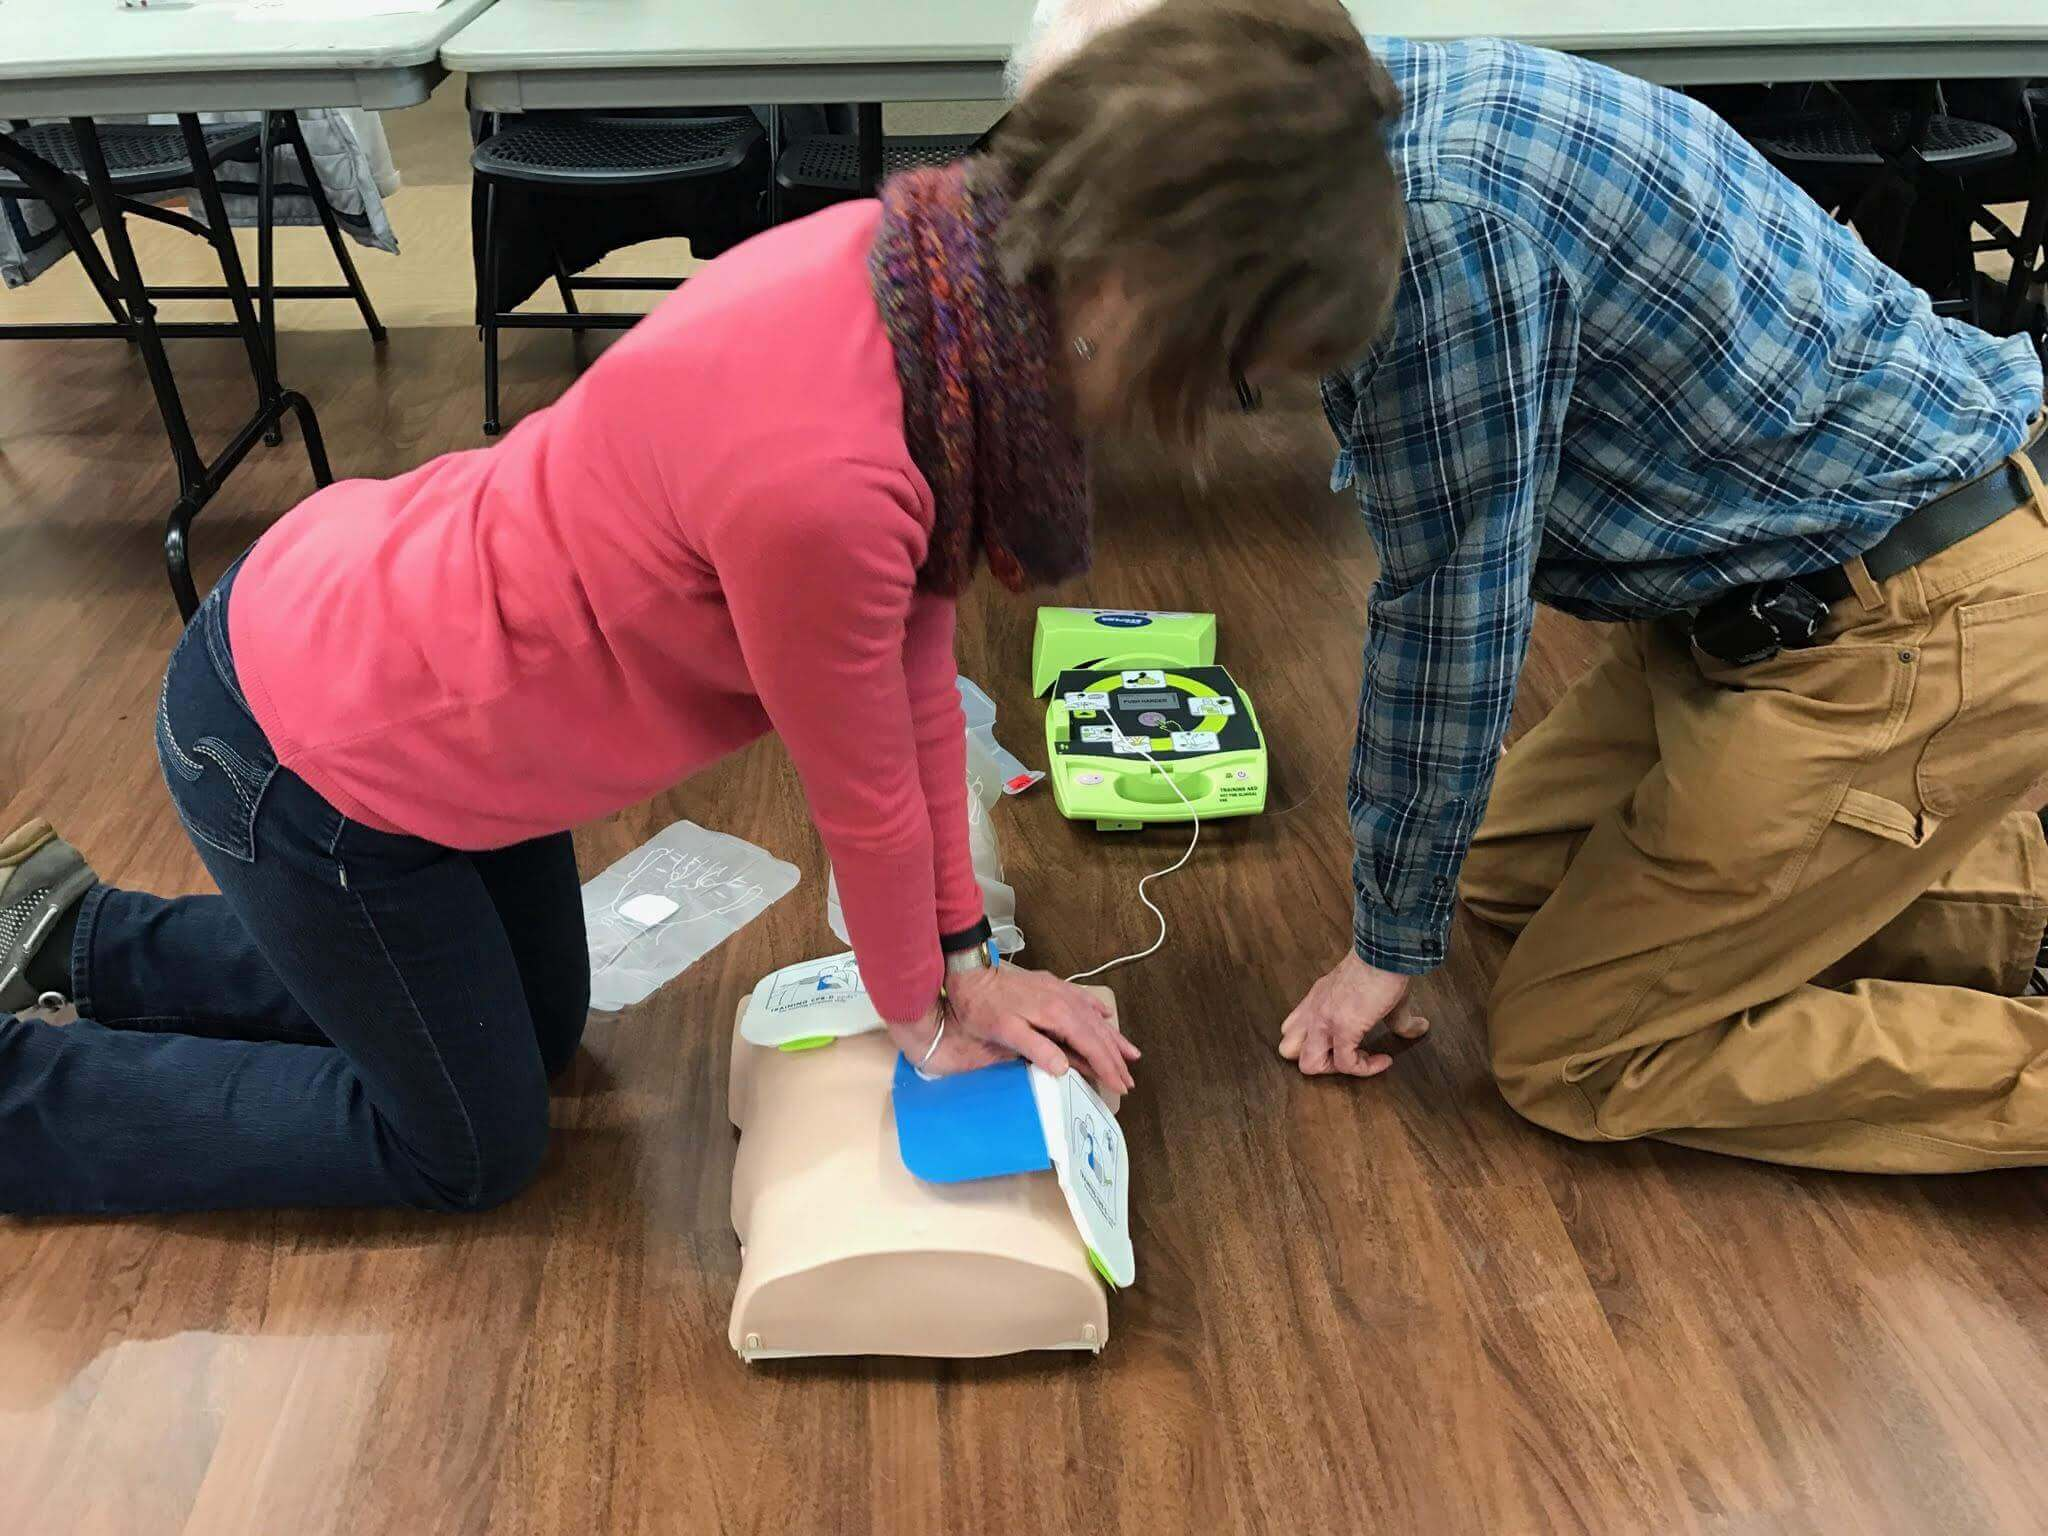 Community CPR Classes